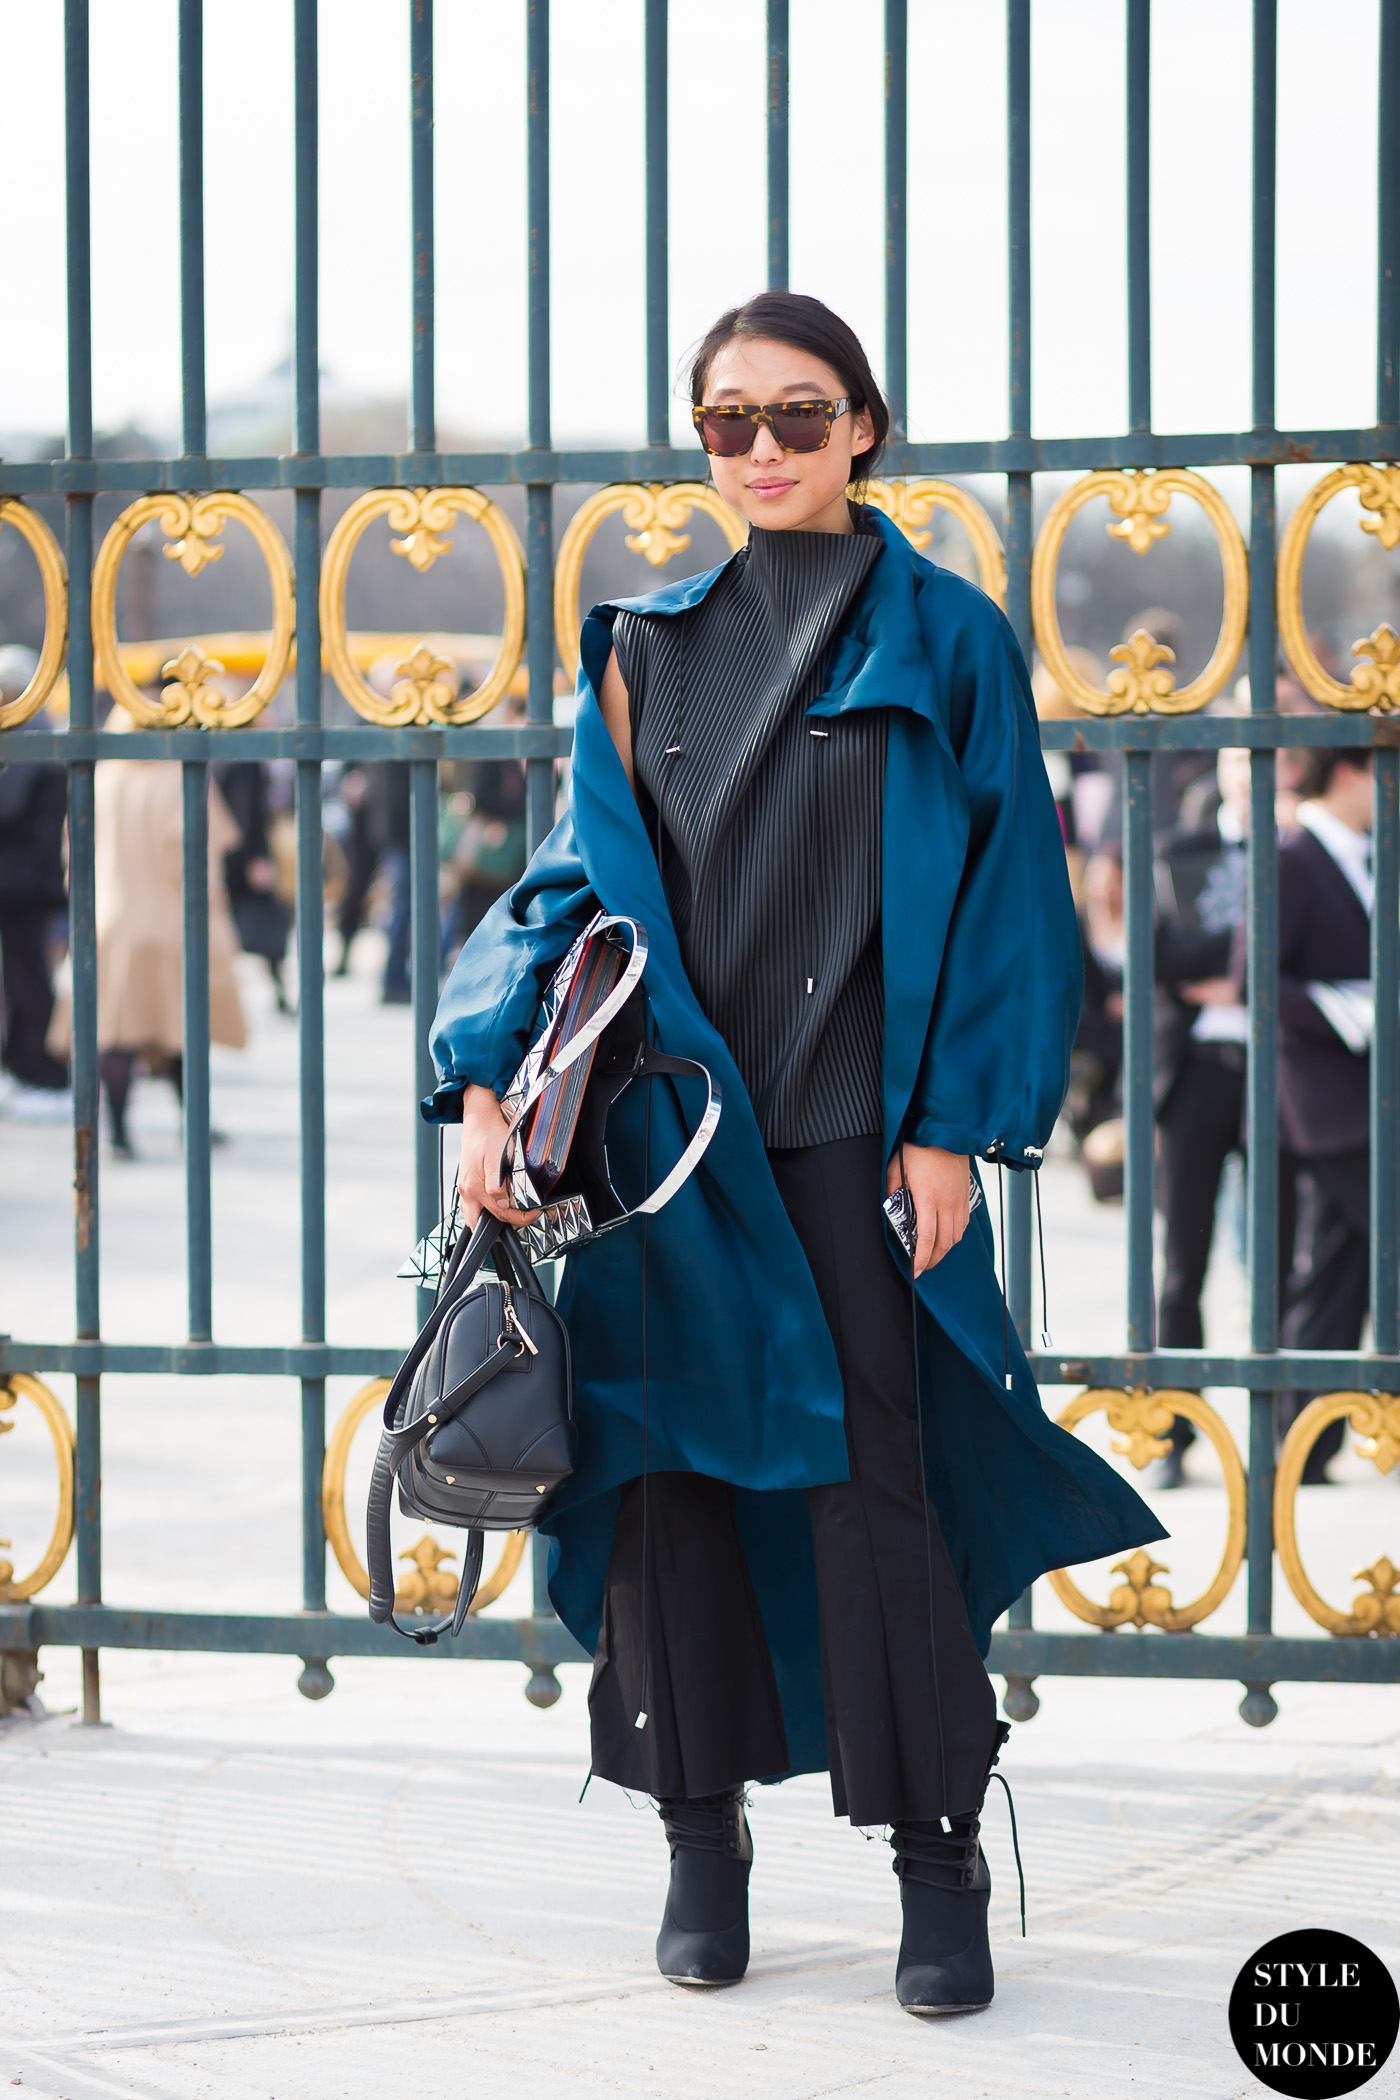 Margaret Zhang 章凝 Street Style Street Fashion Streetsnaps by STYLEDUMONDE Street Style Fashion Photography